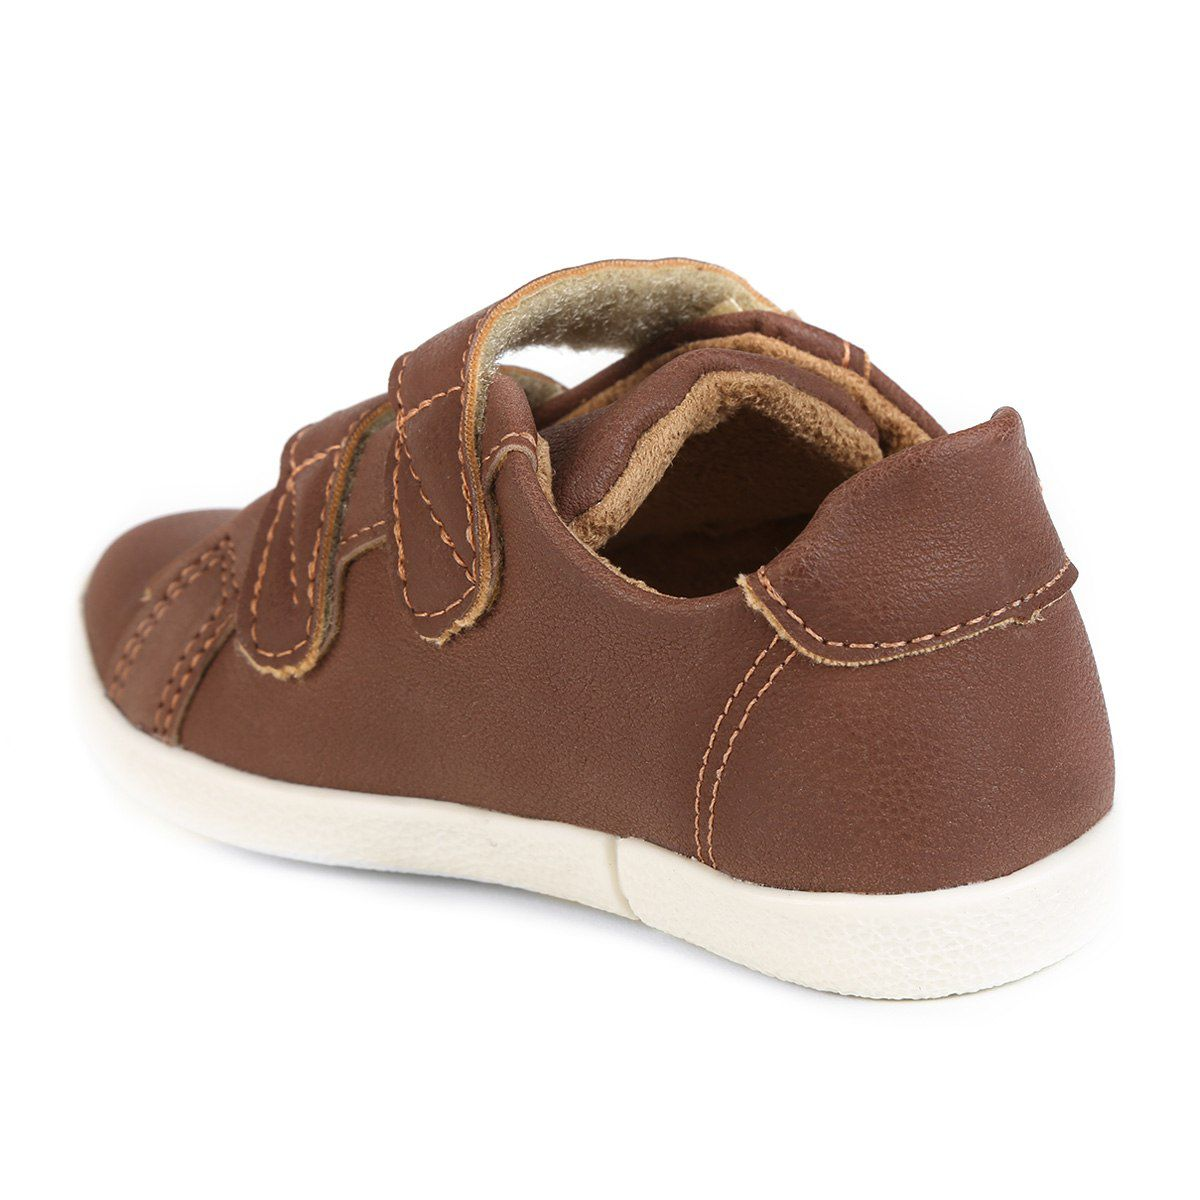 Sapatênis Infantil Baby Flyer Confort Masculino Klin Chocolate